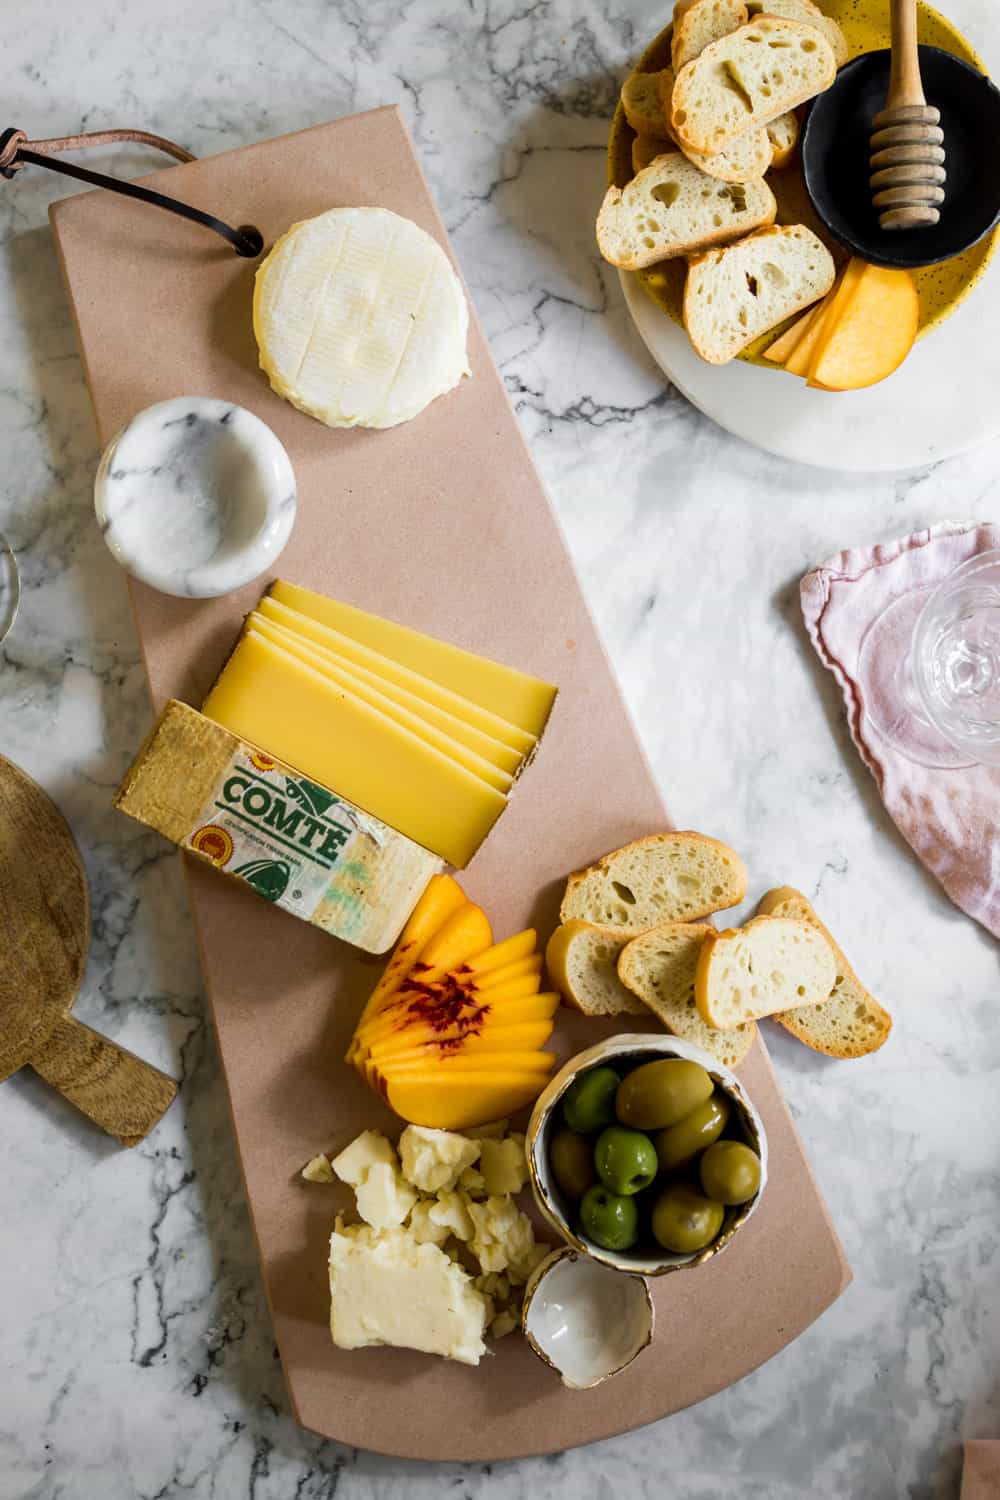 Cheese, bread, stone fruit, and olives on a pink platter.